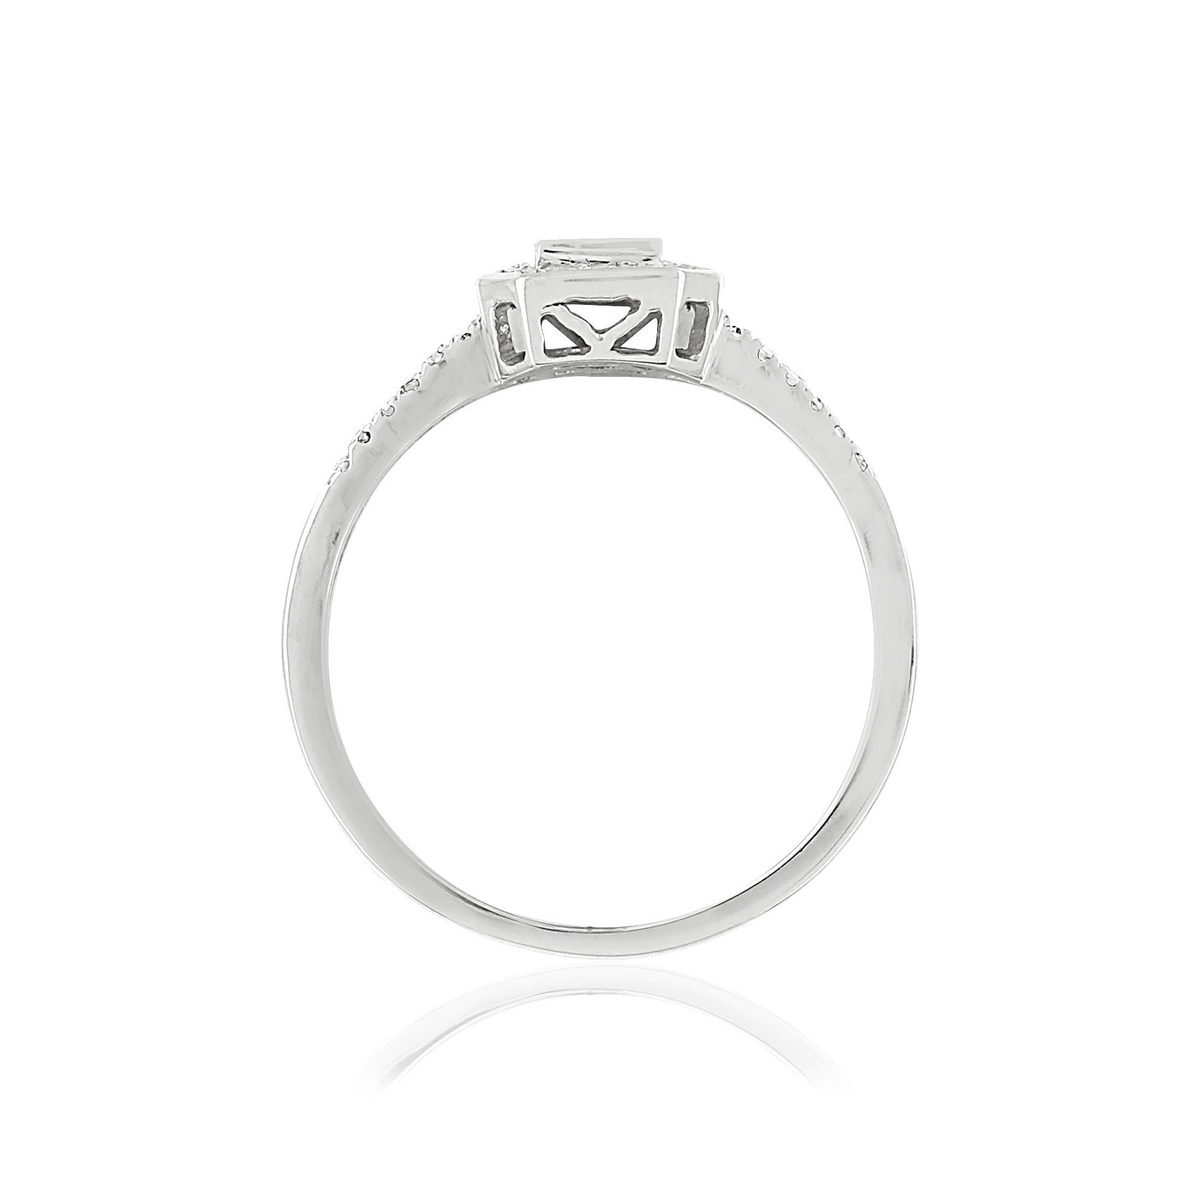 Bague MATY Or 750 blanc Diamants - vue V2